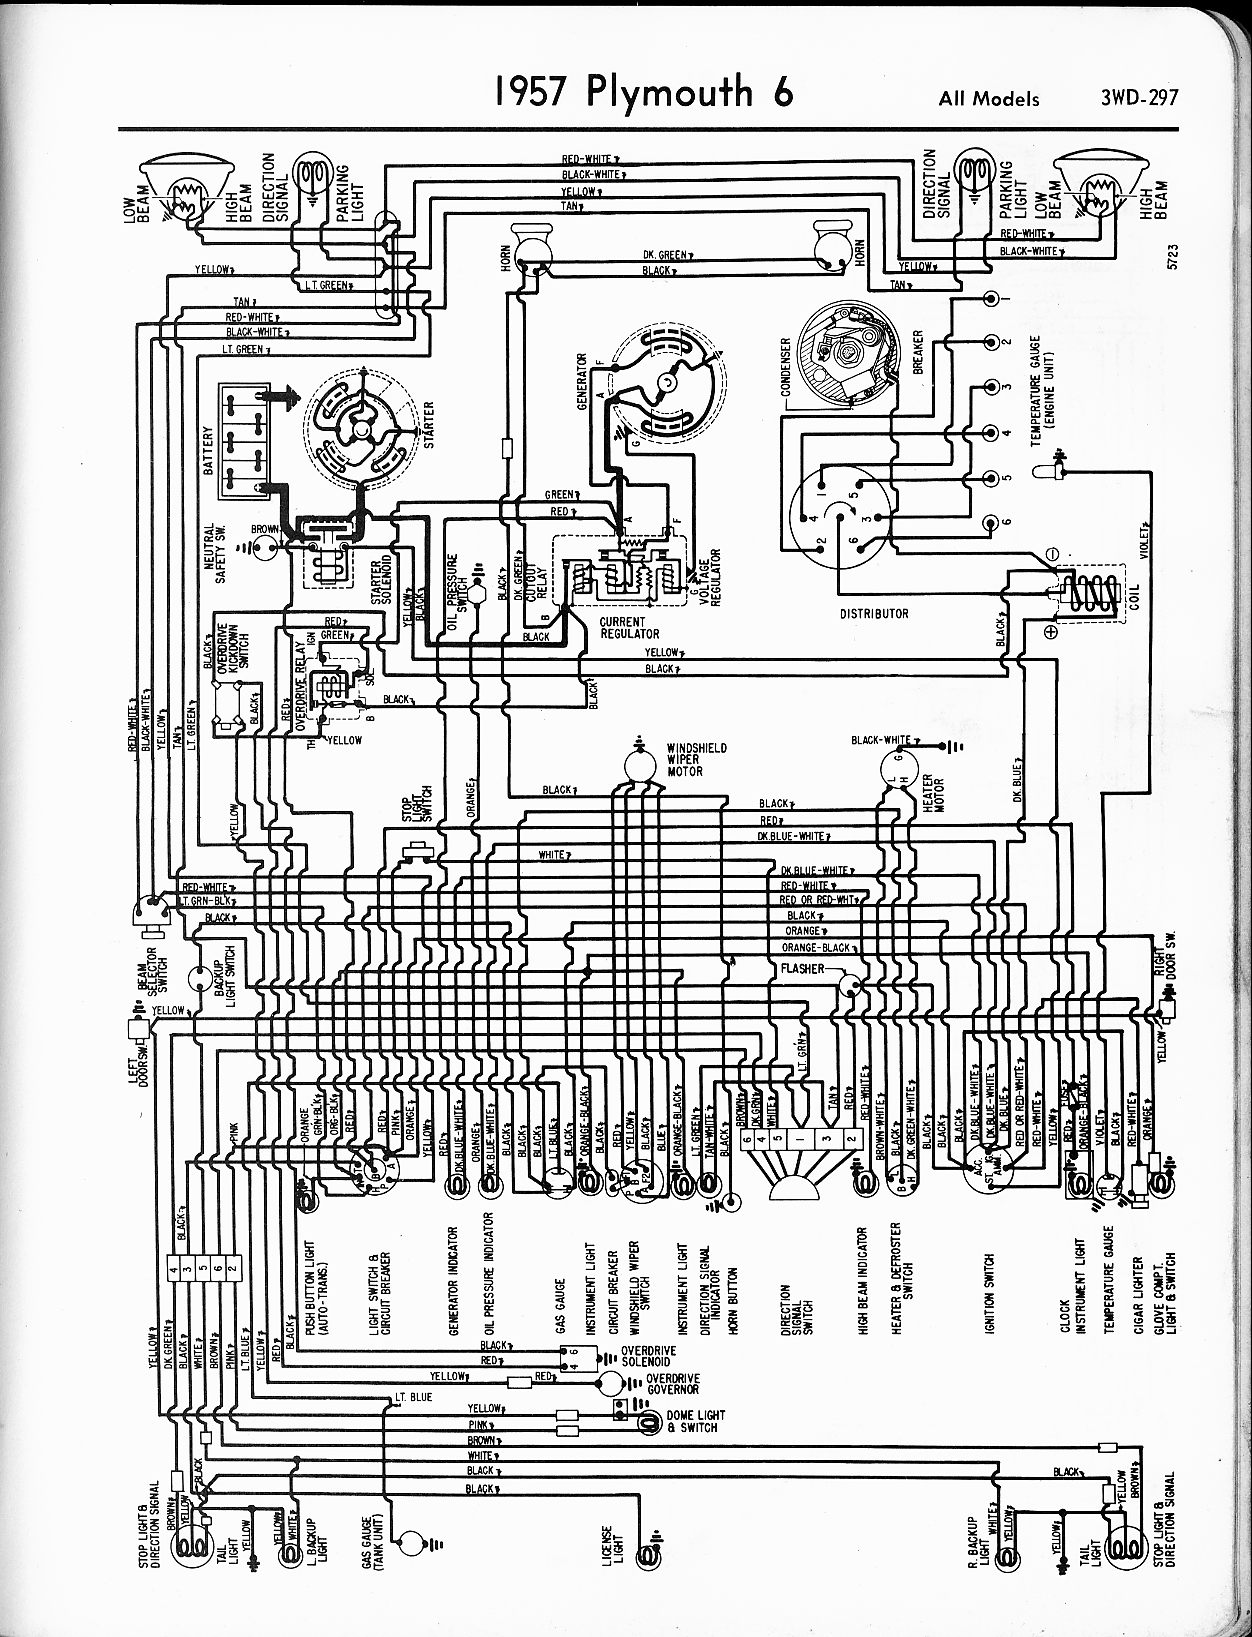 68 plymouth wiring diagram wiring diagram 1968 plymouth belvedere, road runner